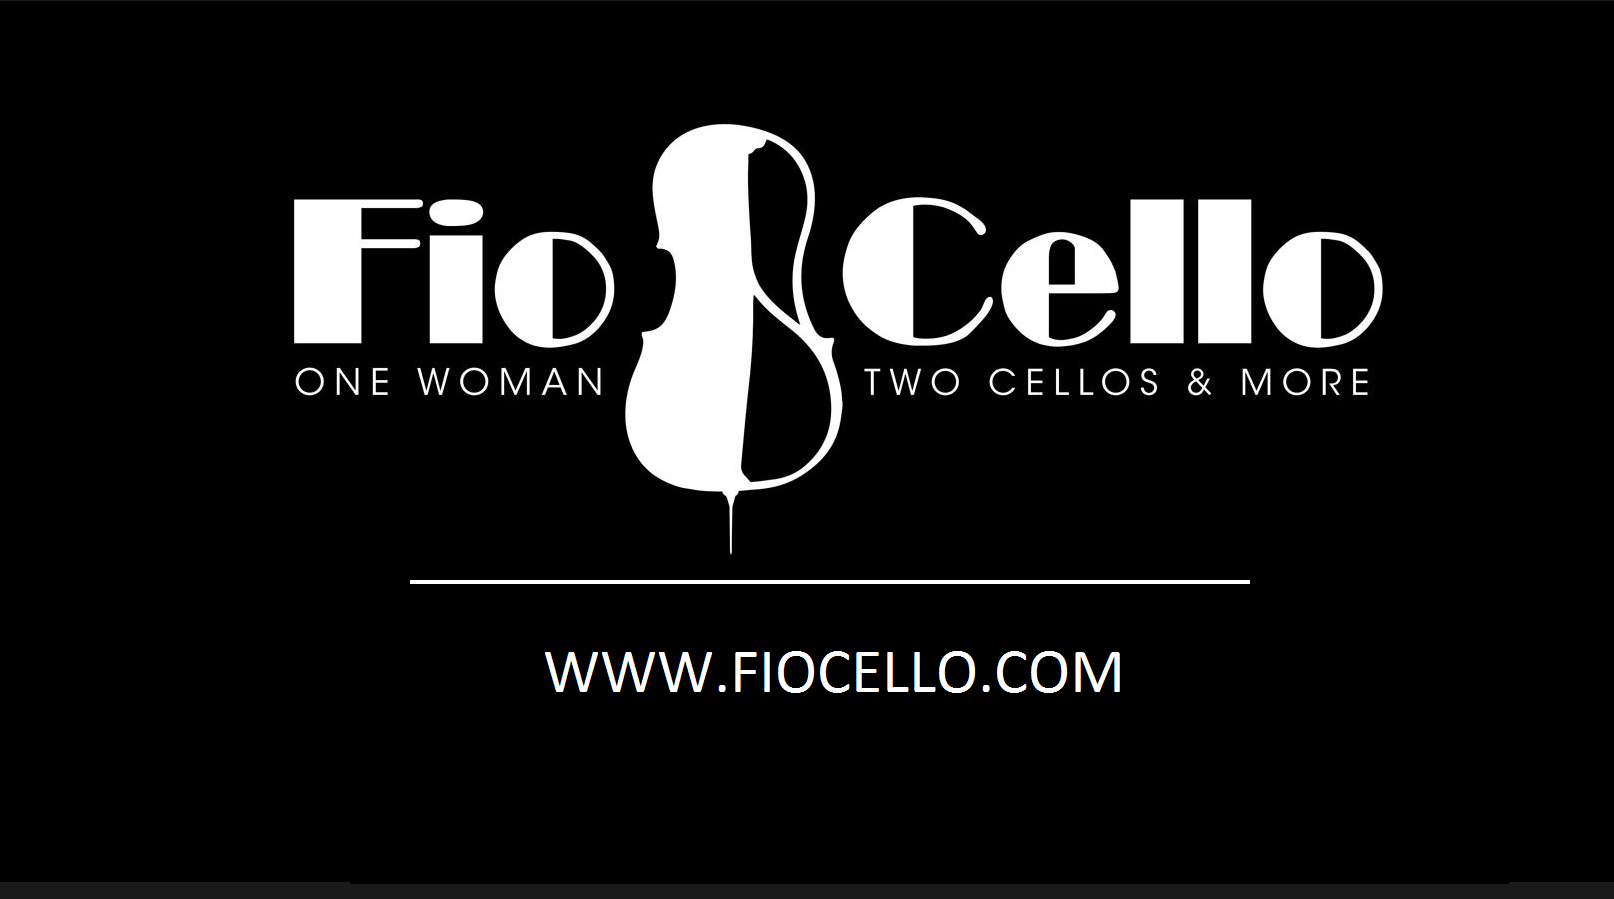 FIOCELLO.COM              website under construction